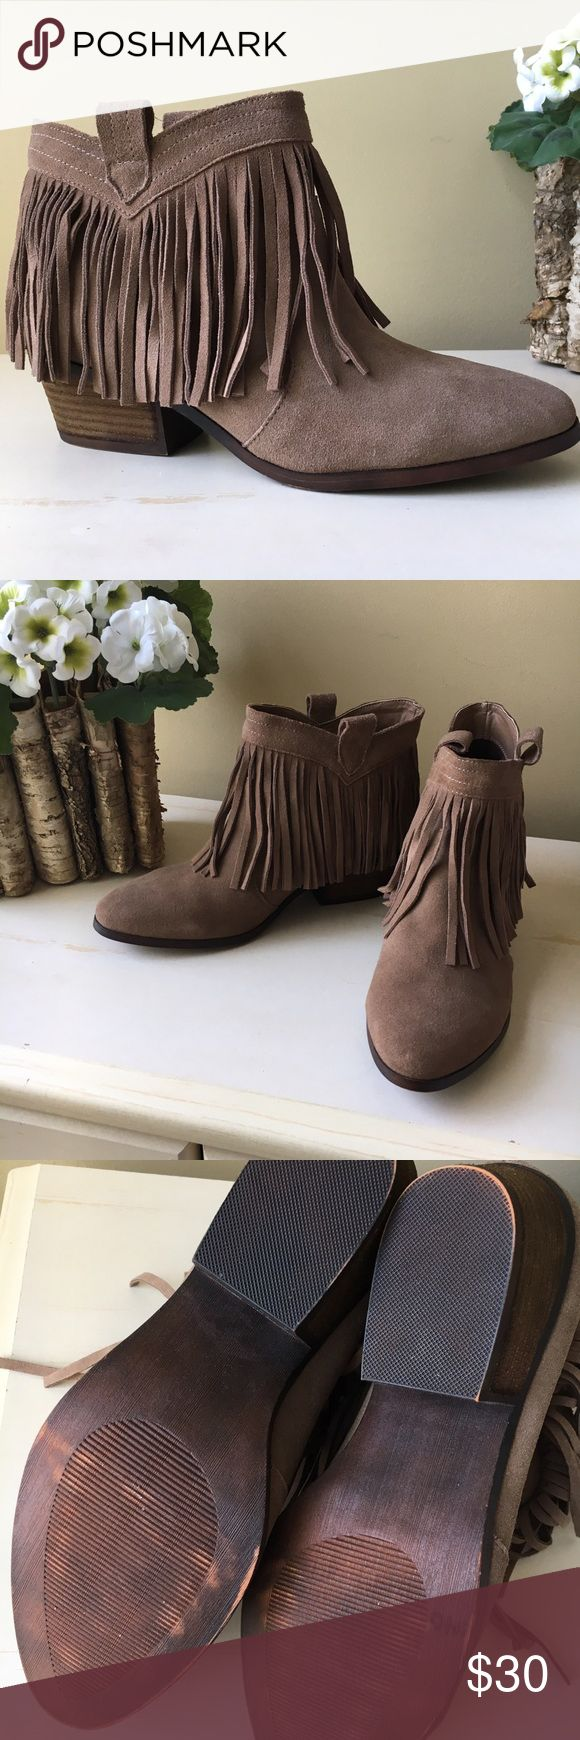 NWOT Suede Fringed Ankle Boots Sz 9 NWOT Suede, fringed, western-style ankle boots. I've sprayed the with water repellant. They have some orange paint on the back of a couple pieces of fringe on the outside of the left boot. Soles have a distressed look. Never worn outside. Size 9 Restricted Shoes Ankle Boots & Booties